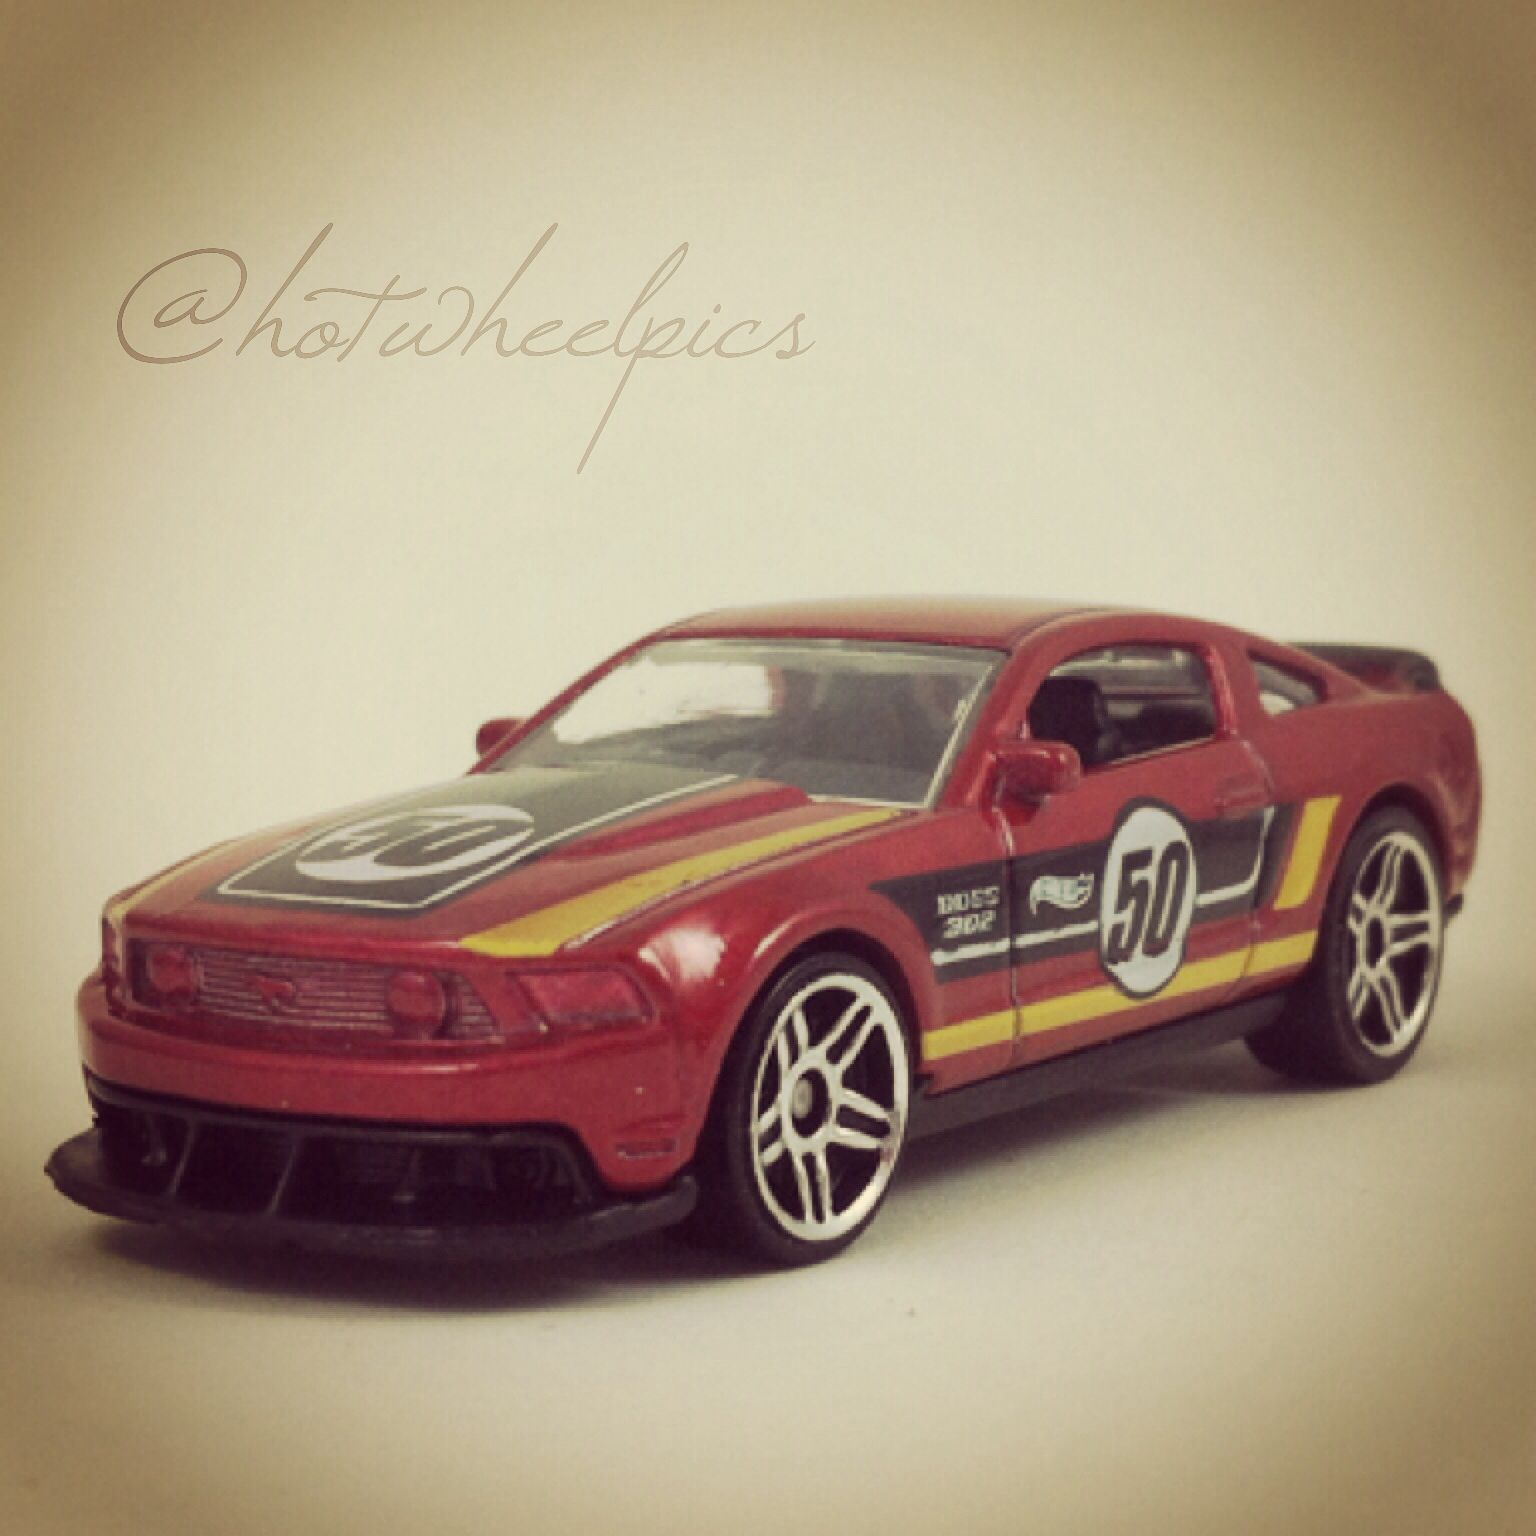 12 Ford Mustang Boss 302 Laguna Seca 2014 Hot Wheels Hw City Mustang 50th Hotwheels Toys Ford Mustang Hot Wheels Toys Hot Wheels Hot Wheels Cars